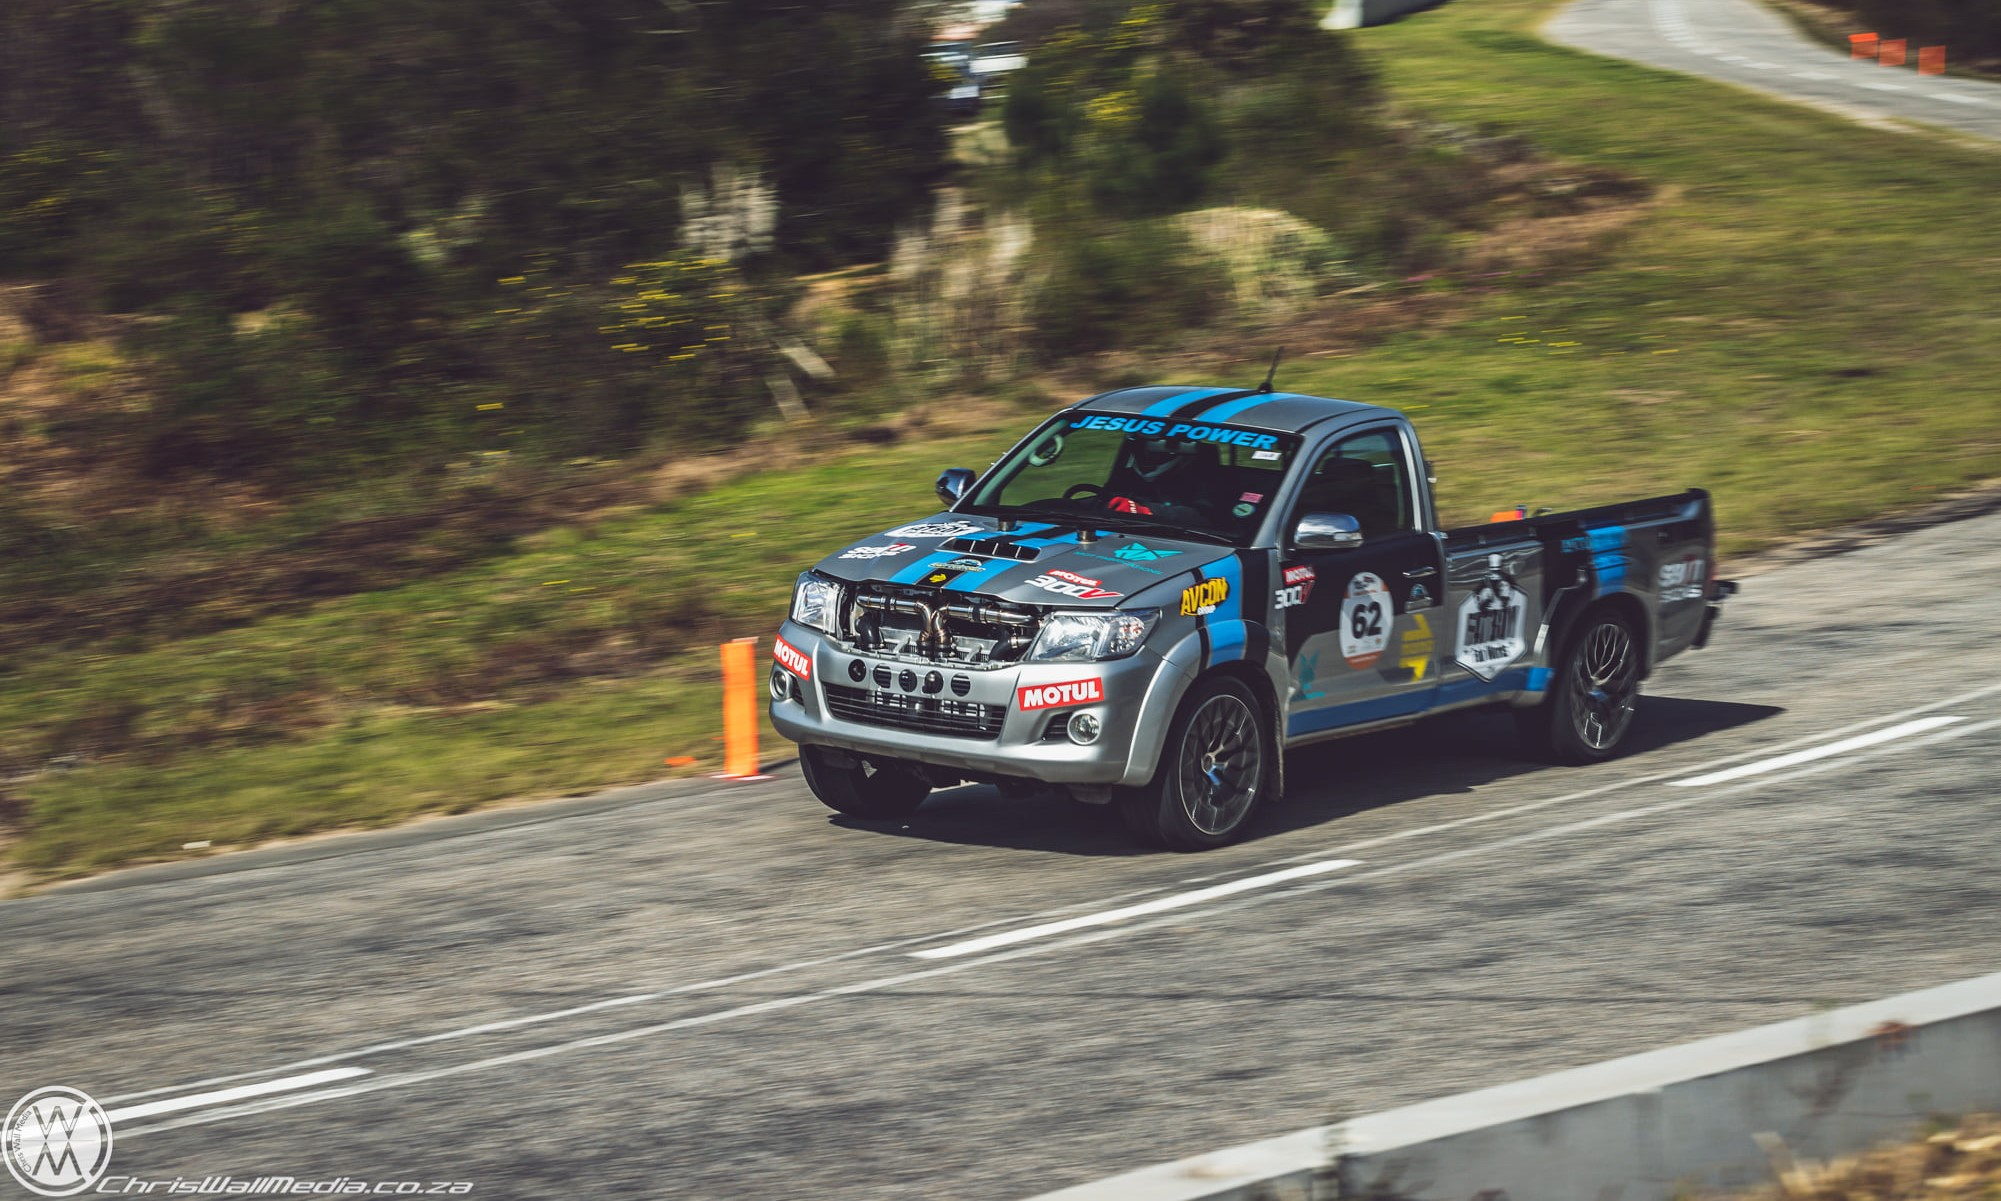 Twin-Turbo V12 Toyota Hilux in action